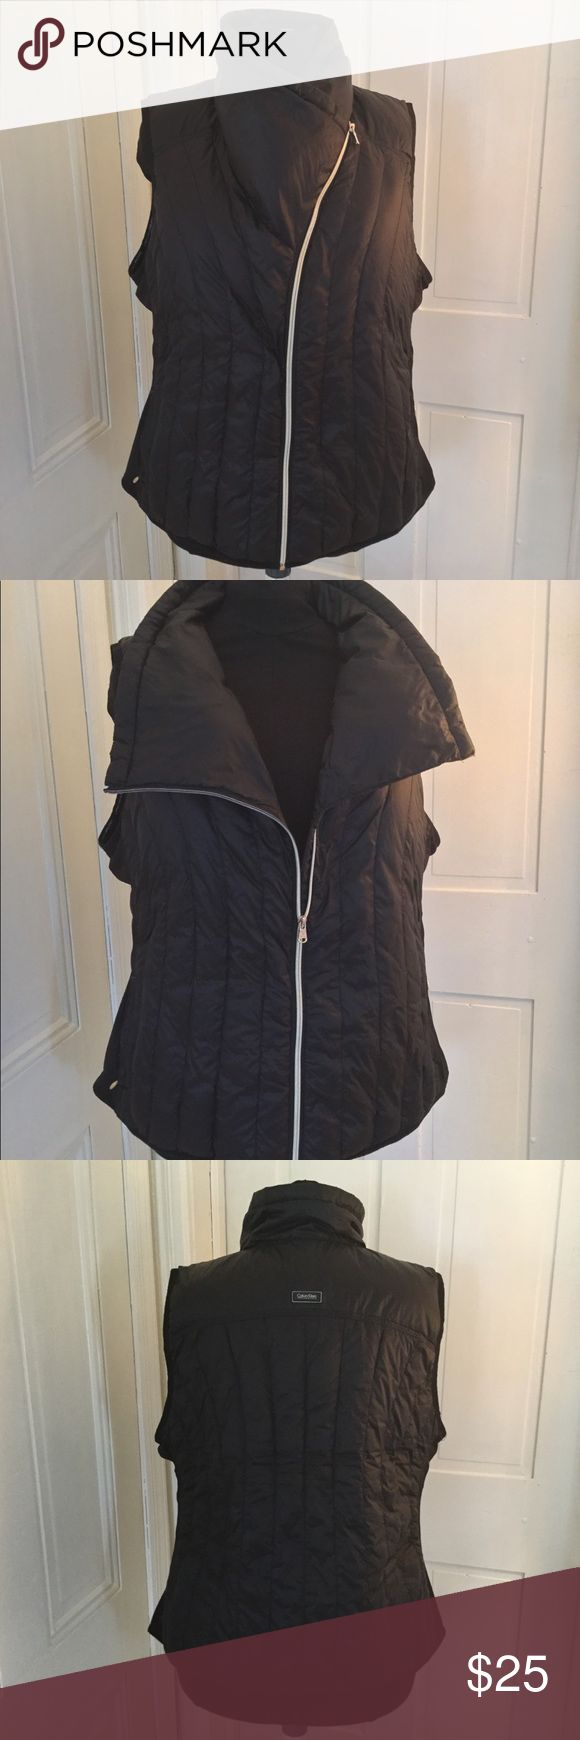 Calvin Klein Plus Size Puffer Vest Beautiful, barely used, black down vest with high funnel neck when fully zipped. Shell and Lining are 100% nylon. Fill is 90% down and 10% feathers. Sides have polyester and spandex elastic insets. Machine washable. Has zip security pockets (two), and headphone access gussets. Calvin Klein Jackets & Coats Puffers